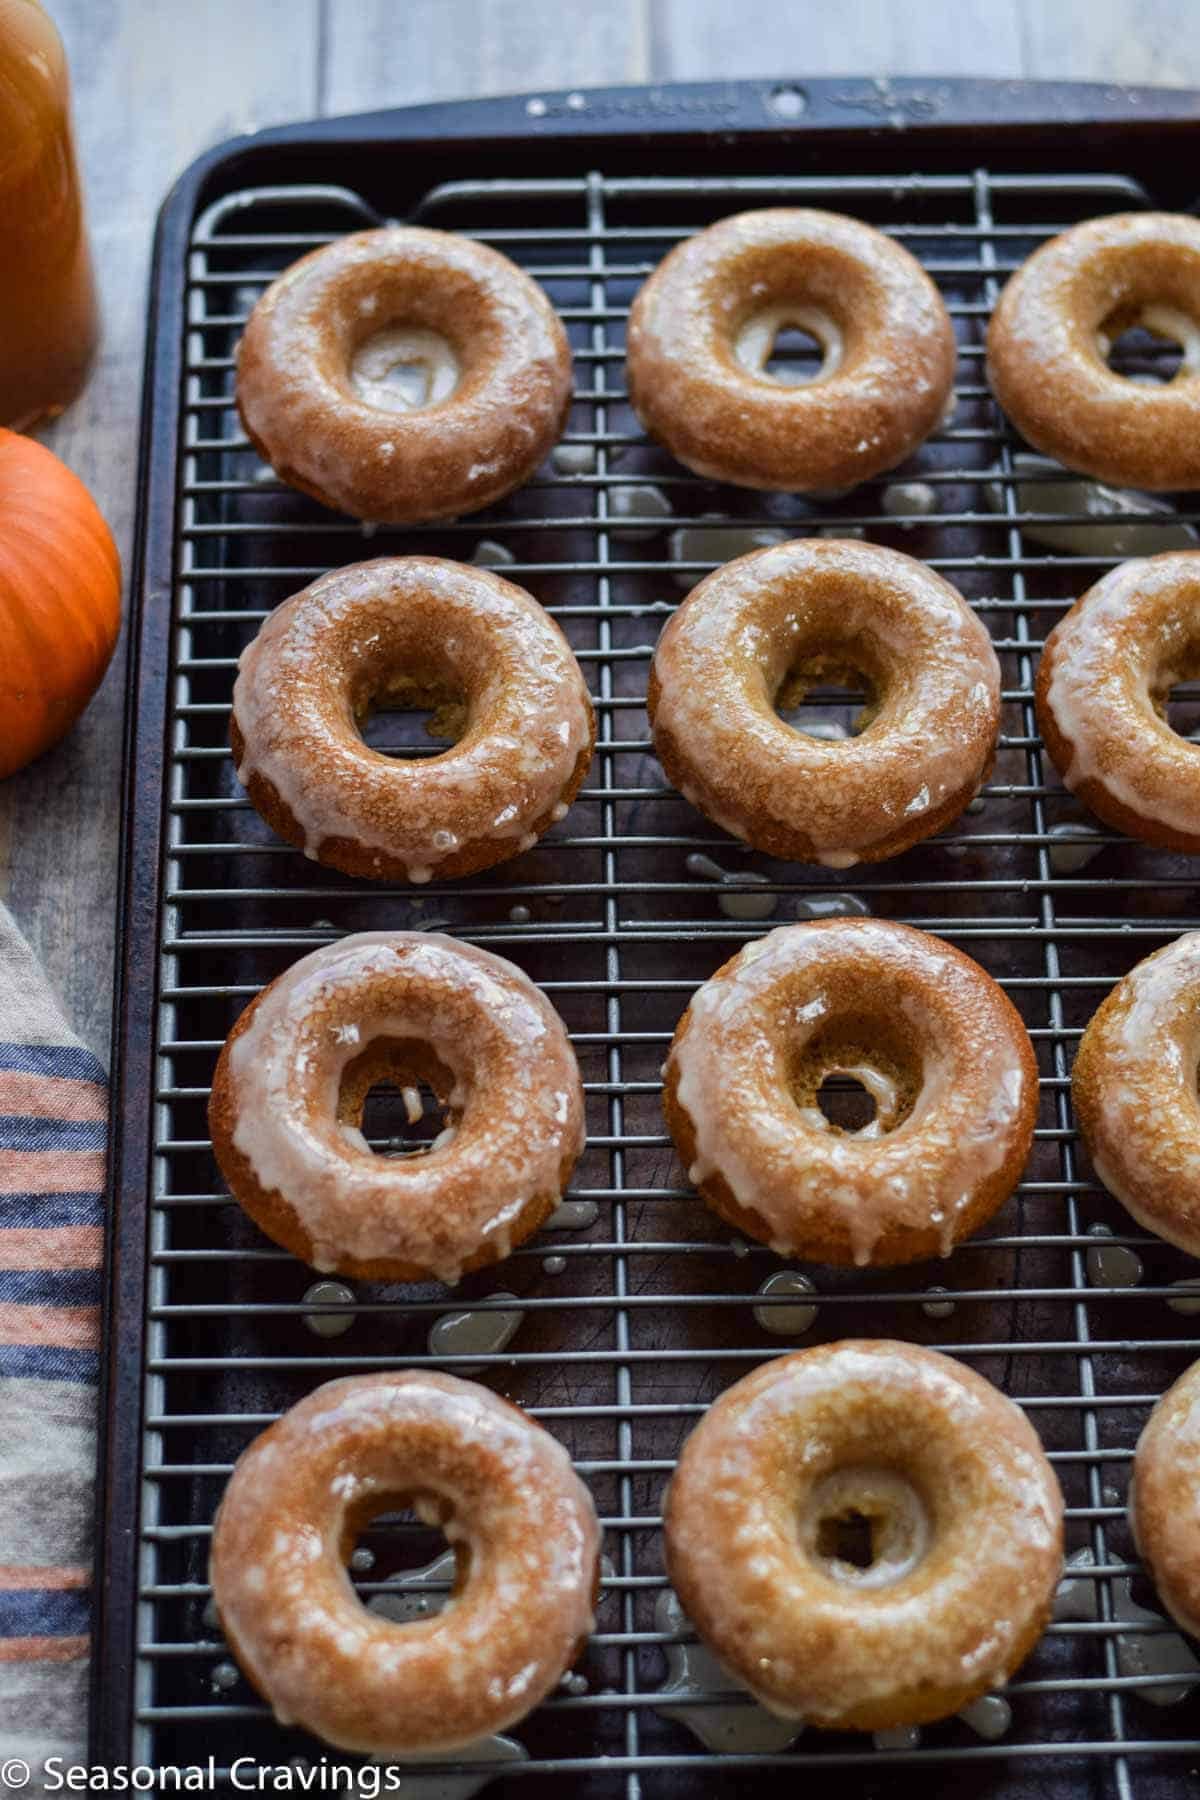 Gluten Free Apple Cider Doughnuts for a sweet, gluten free treat